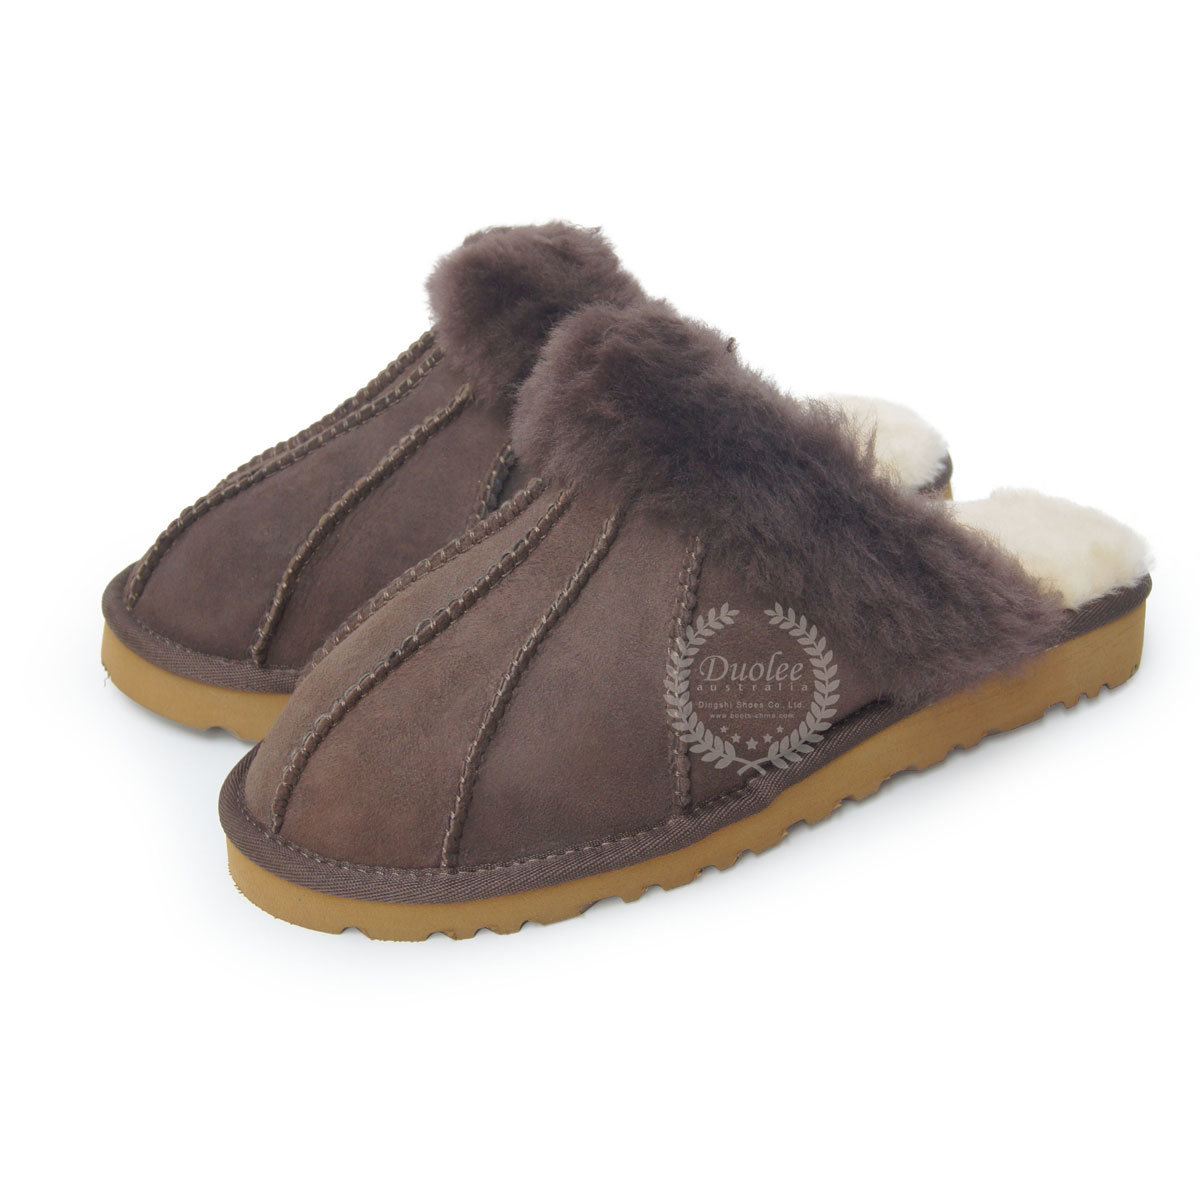 Amazon.com: winter slippers: Clothing, Shoes & Jewelry